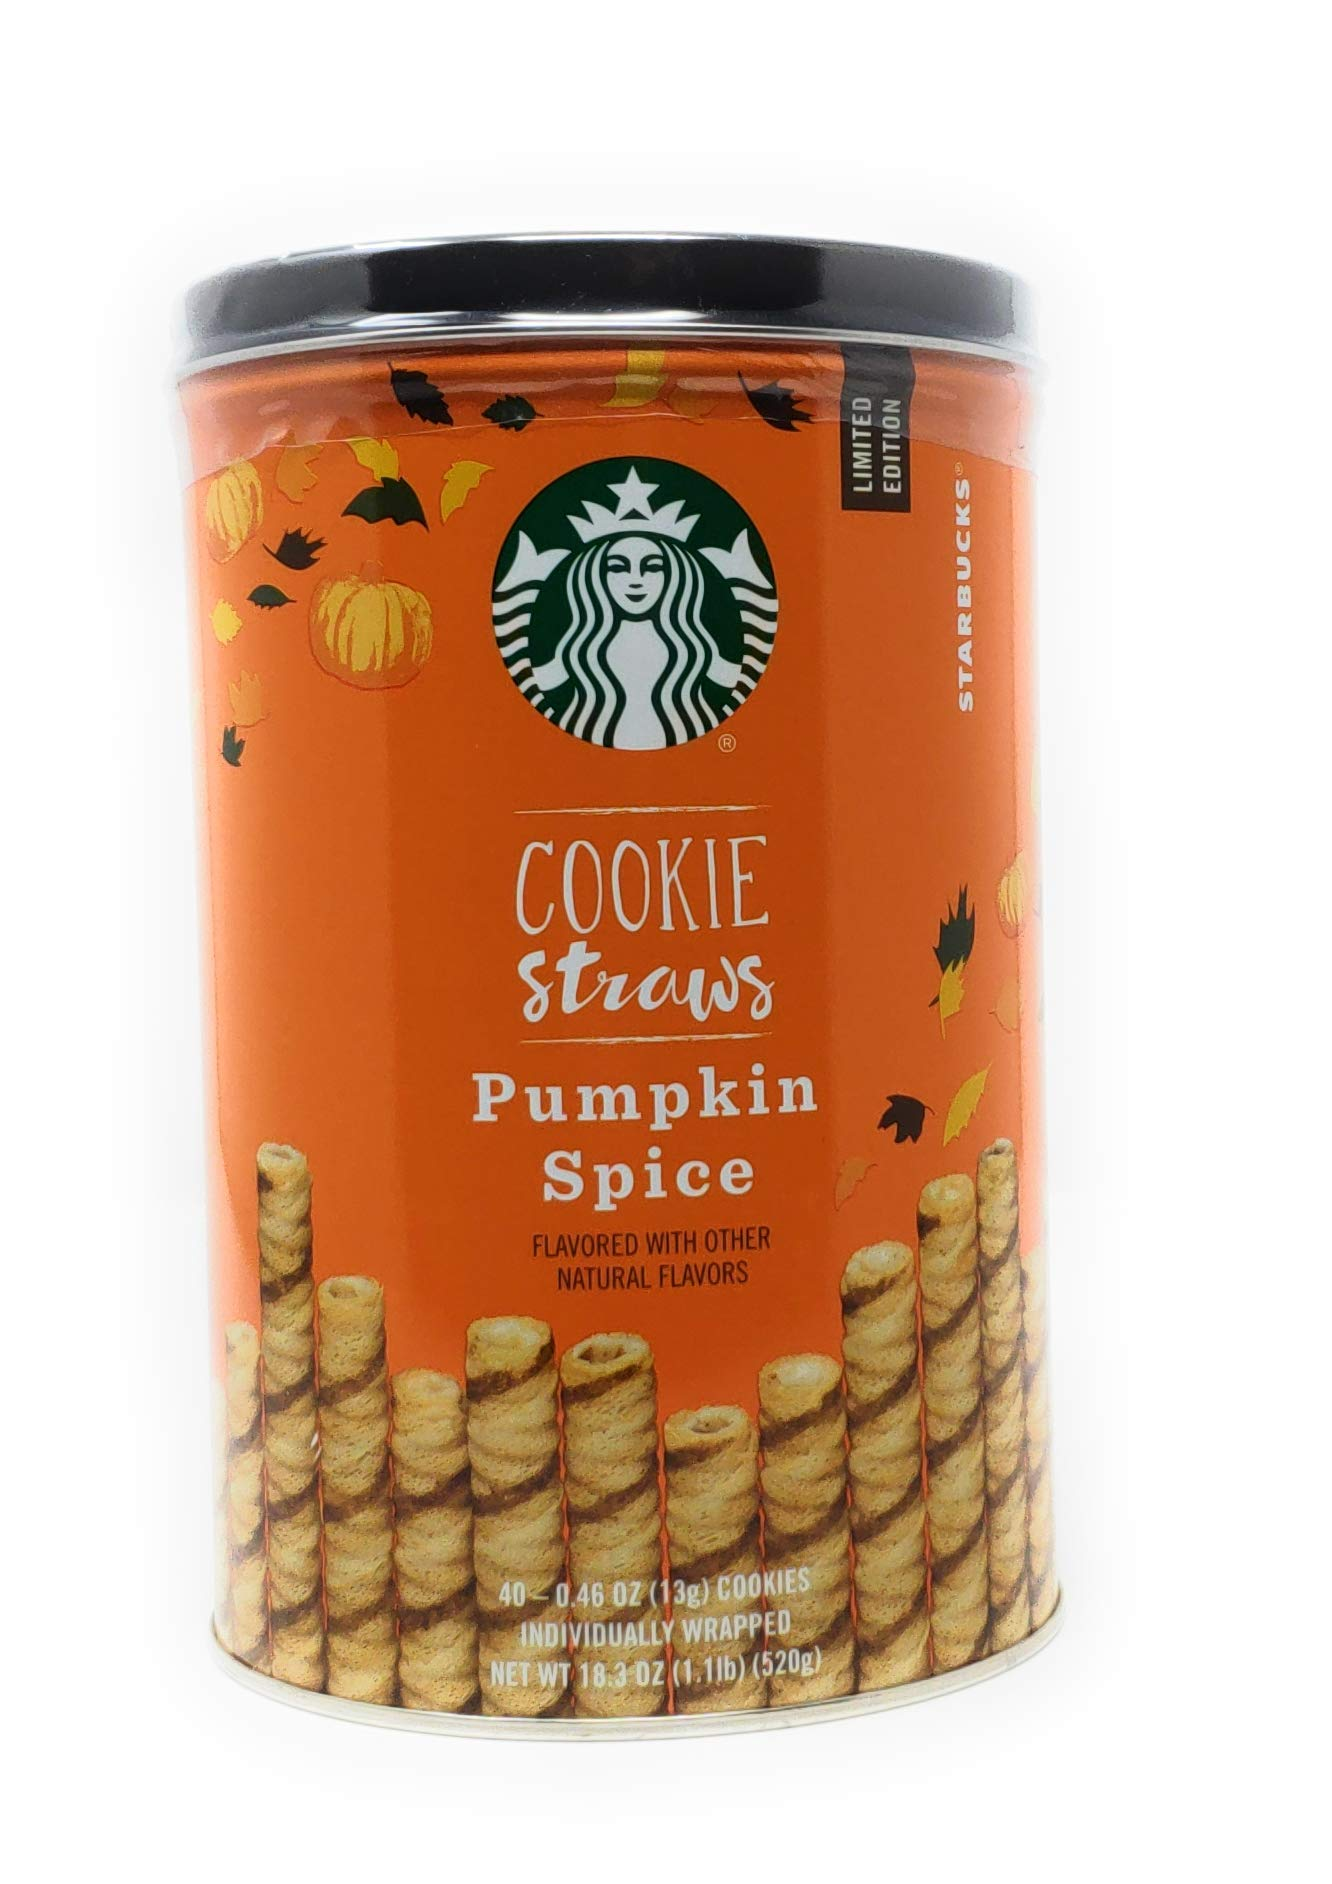 Starbucks Pumpkin Spice Cookie Straws, 40 Individually Wrapped Straw Cookie by Starbucks